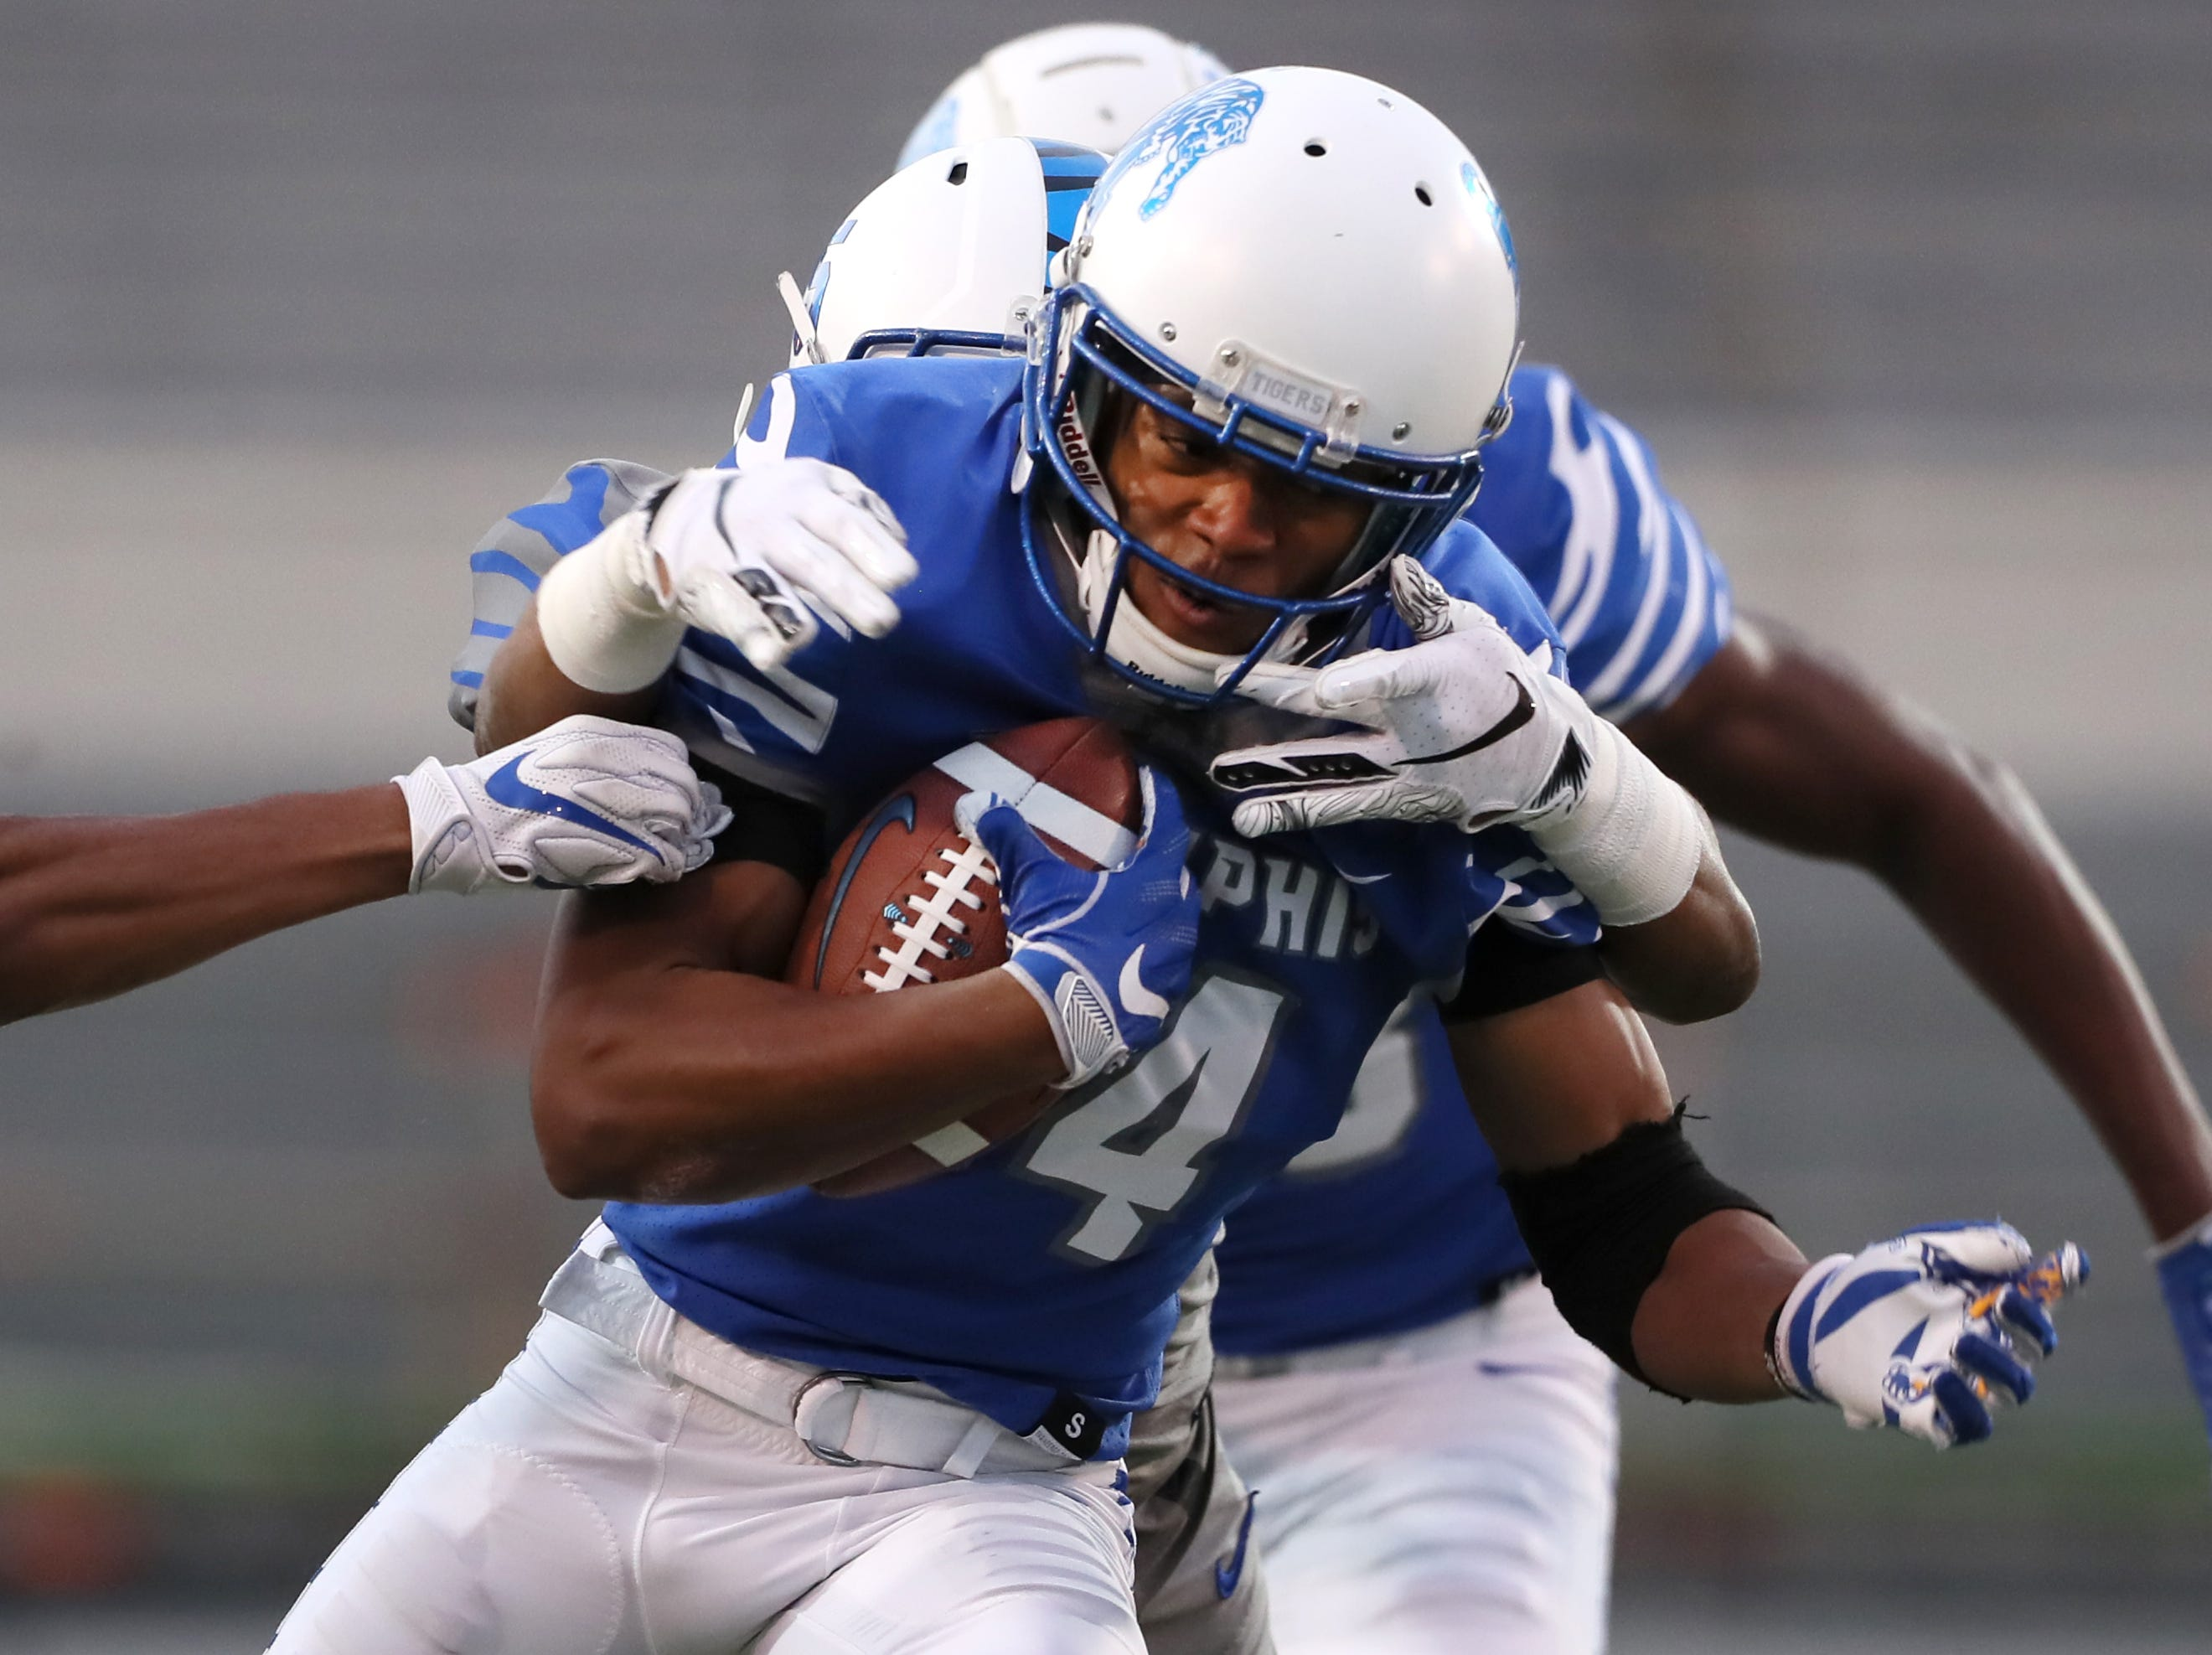 Memphis Tigers wide receiver Antonio Gibson breaks downfield as defenders hang on during their Friday Night Stripes spring game at Liberty Bowl Memorial Stadium on Friday, April 12, 2019.